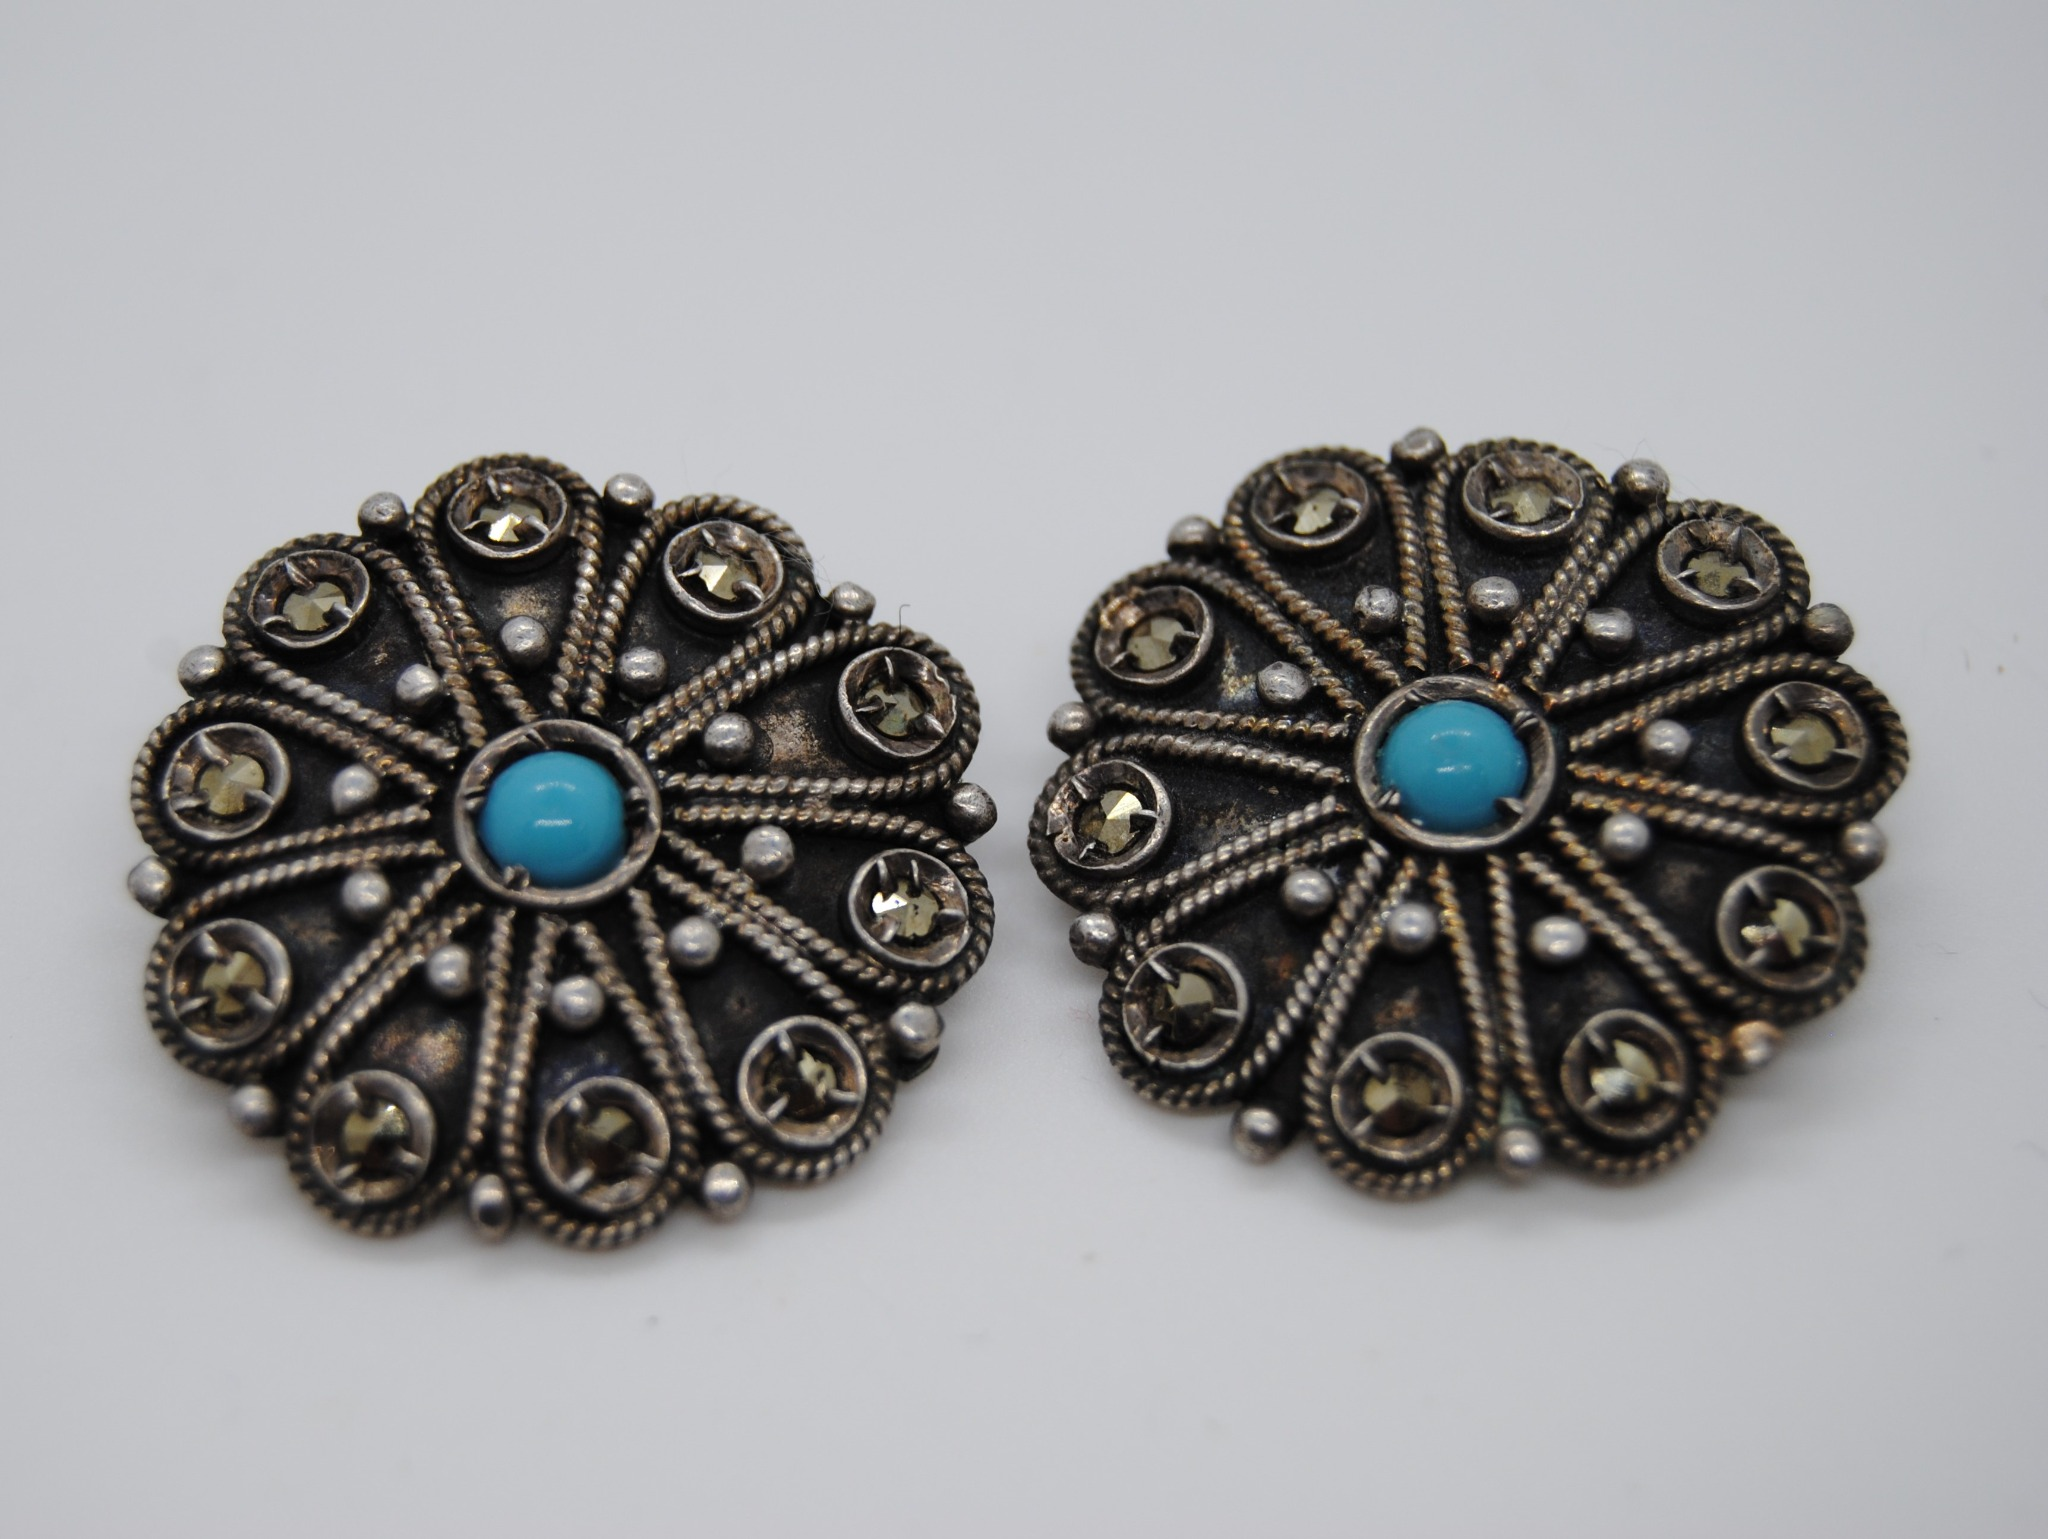 800 Silver Marcasite and Turquoise Clip On Earrings 1